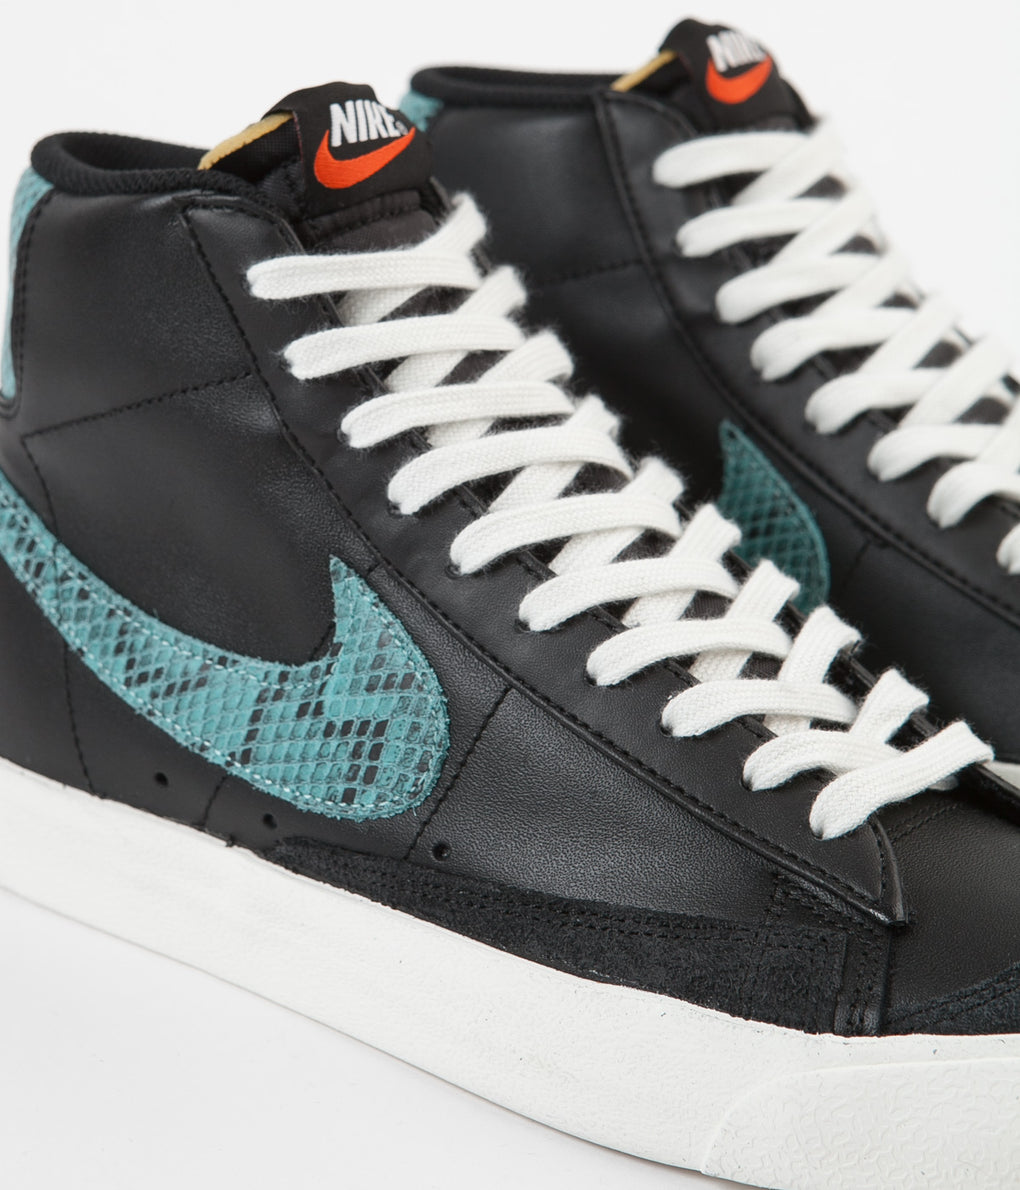 Nike Blazer Mid 77 Vintage Shoes - Black / Light Aqua - Sail